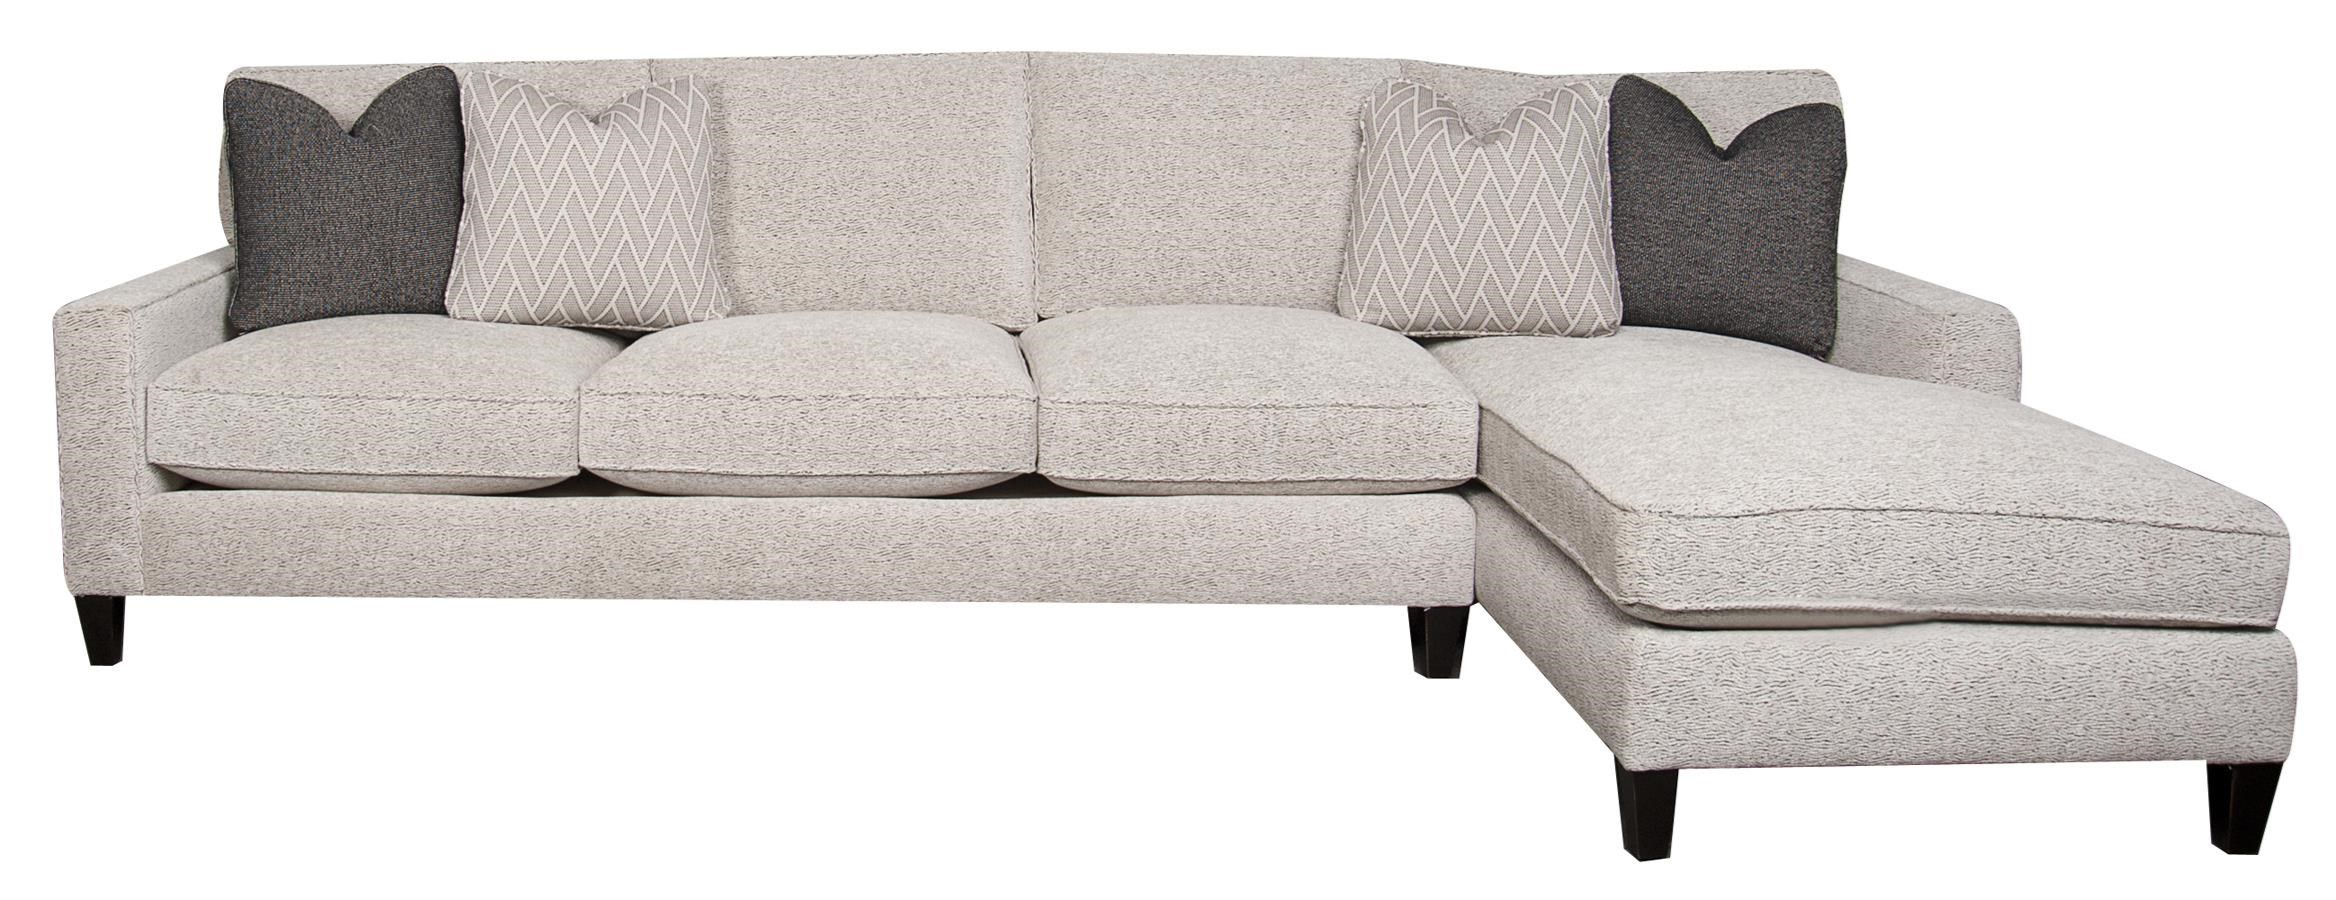 Bernhardt SignatureSignature Sectional Sofa Chaise ...